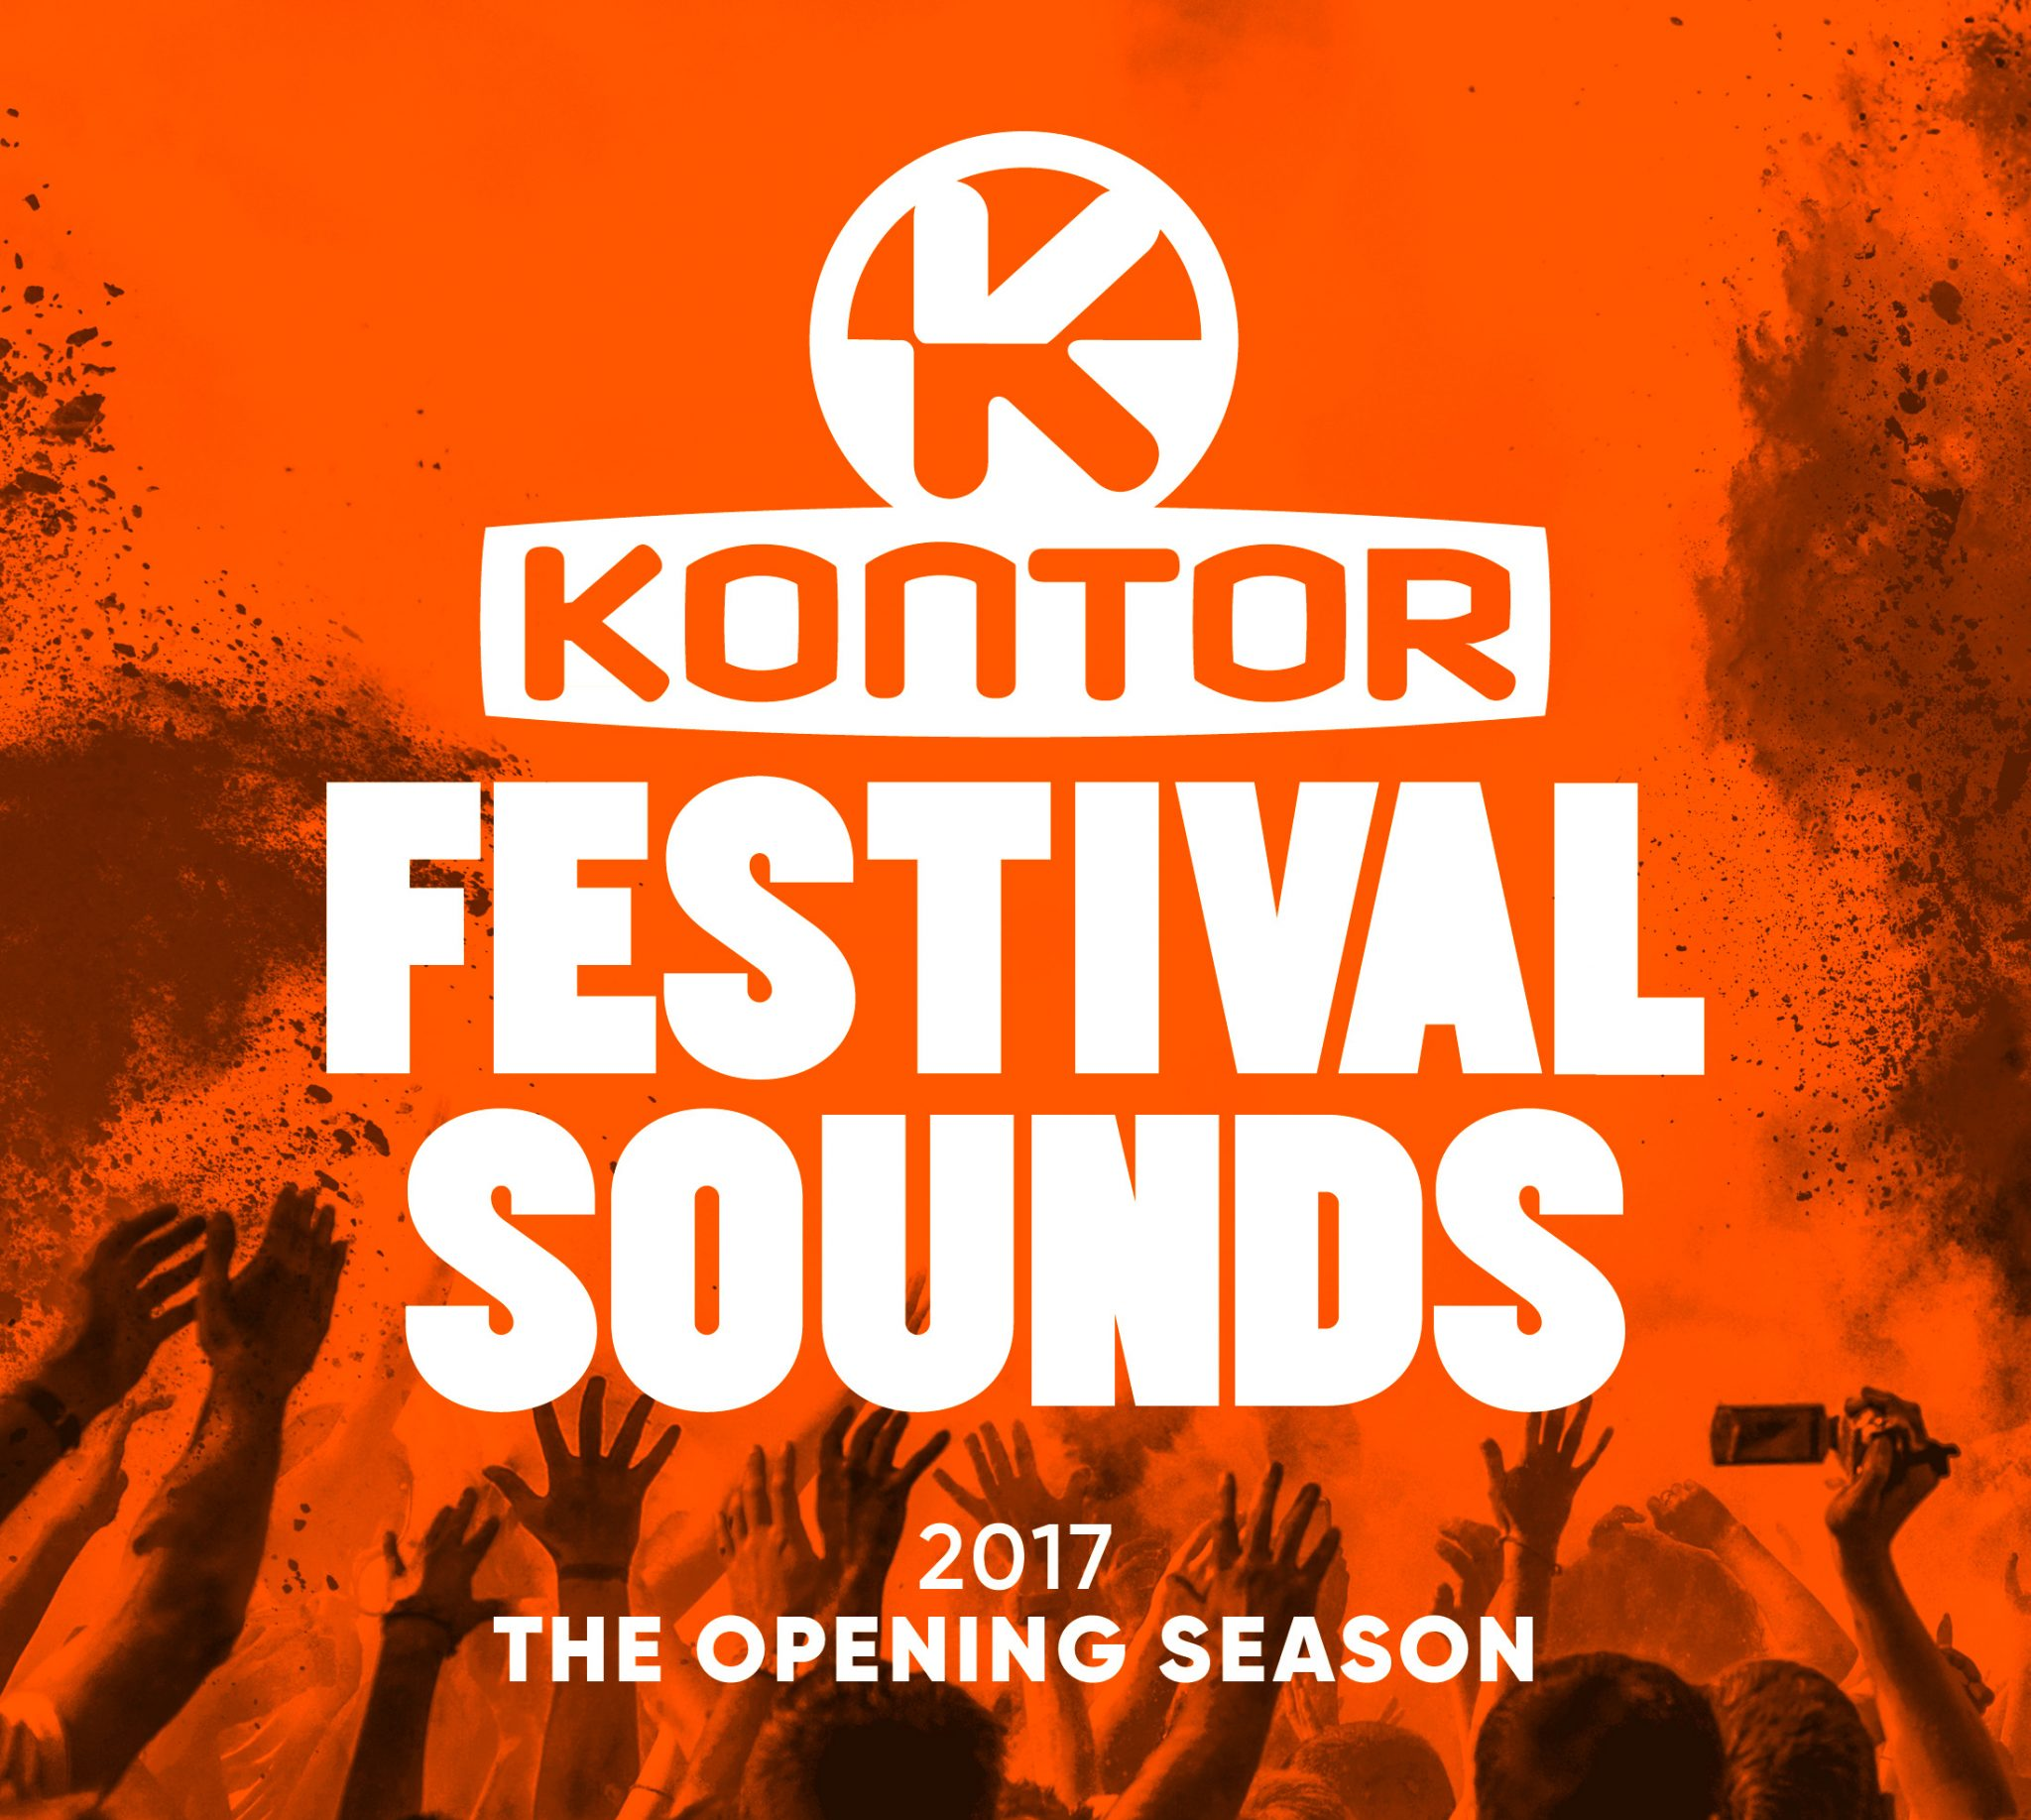 V.A. – KONTOR FESTIVAL SOUNDS 2017 – THE OPENING SEASON 3 CD & DOWNLOAD: OUT 09.06.2017